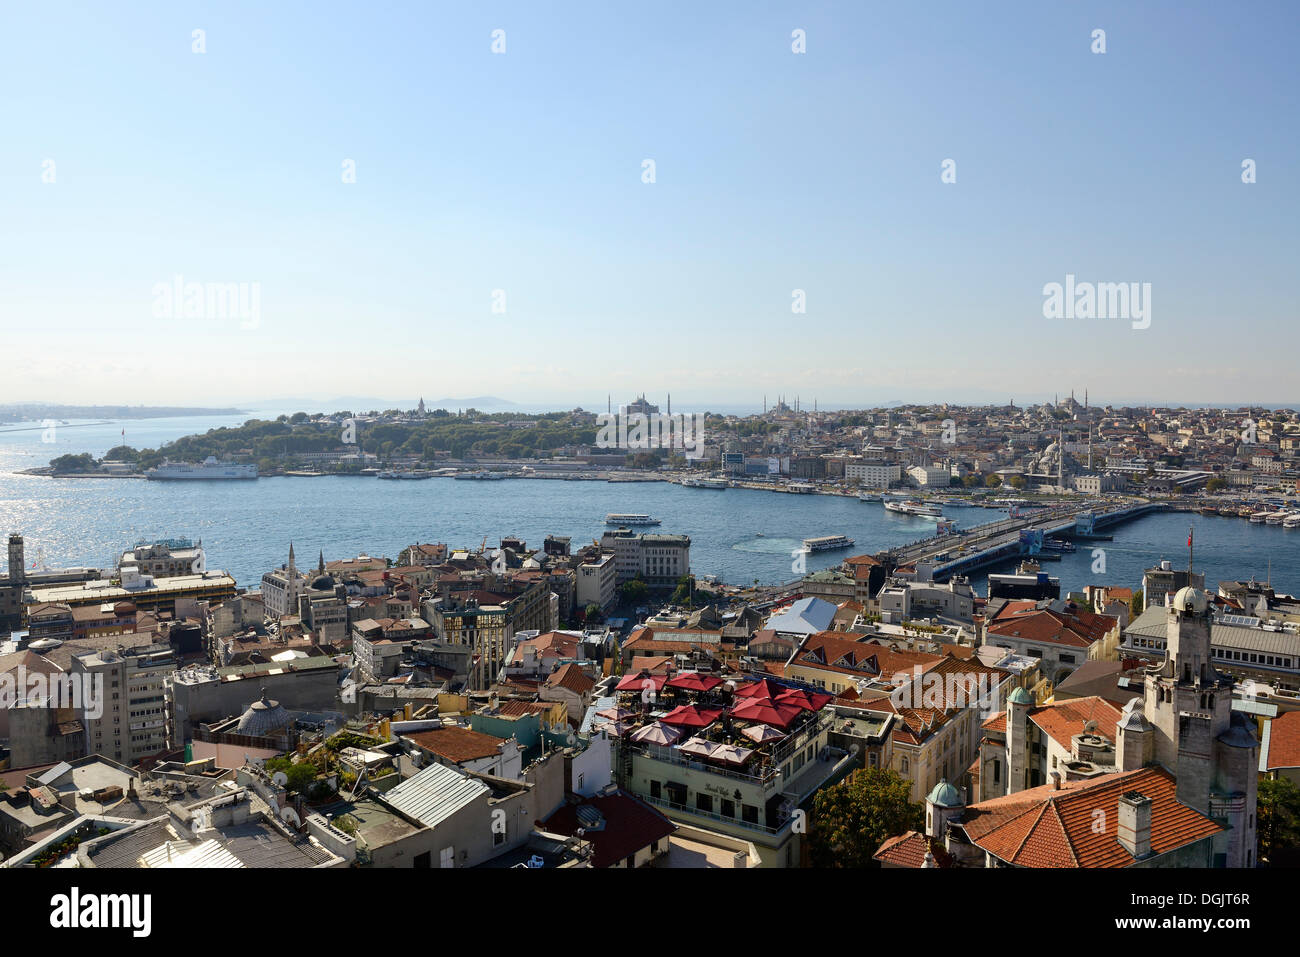 Golden Horn Sultanahmet district with Topkapi Palace, Hagia Sophia and Blue Mosque, Galata Bridge - Stock Image